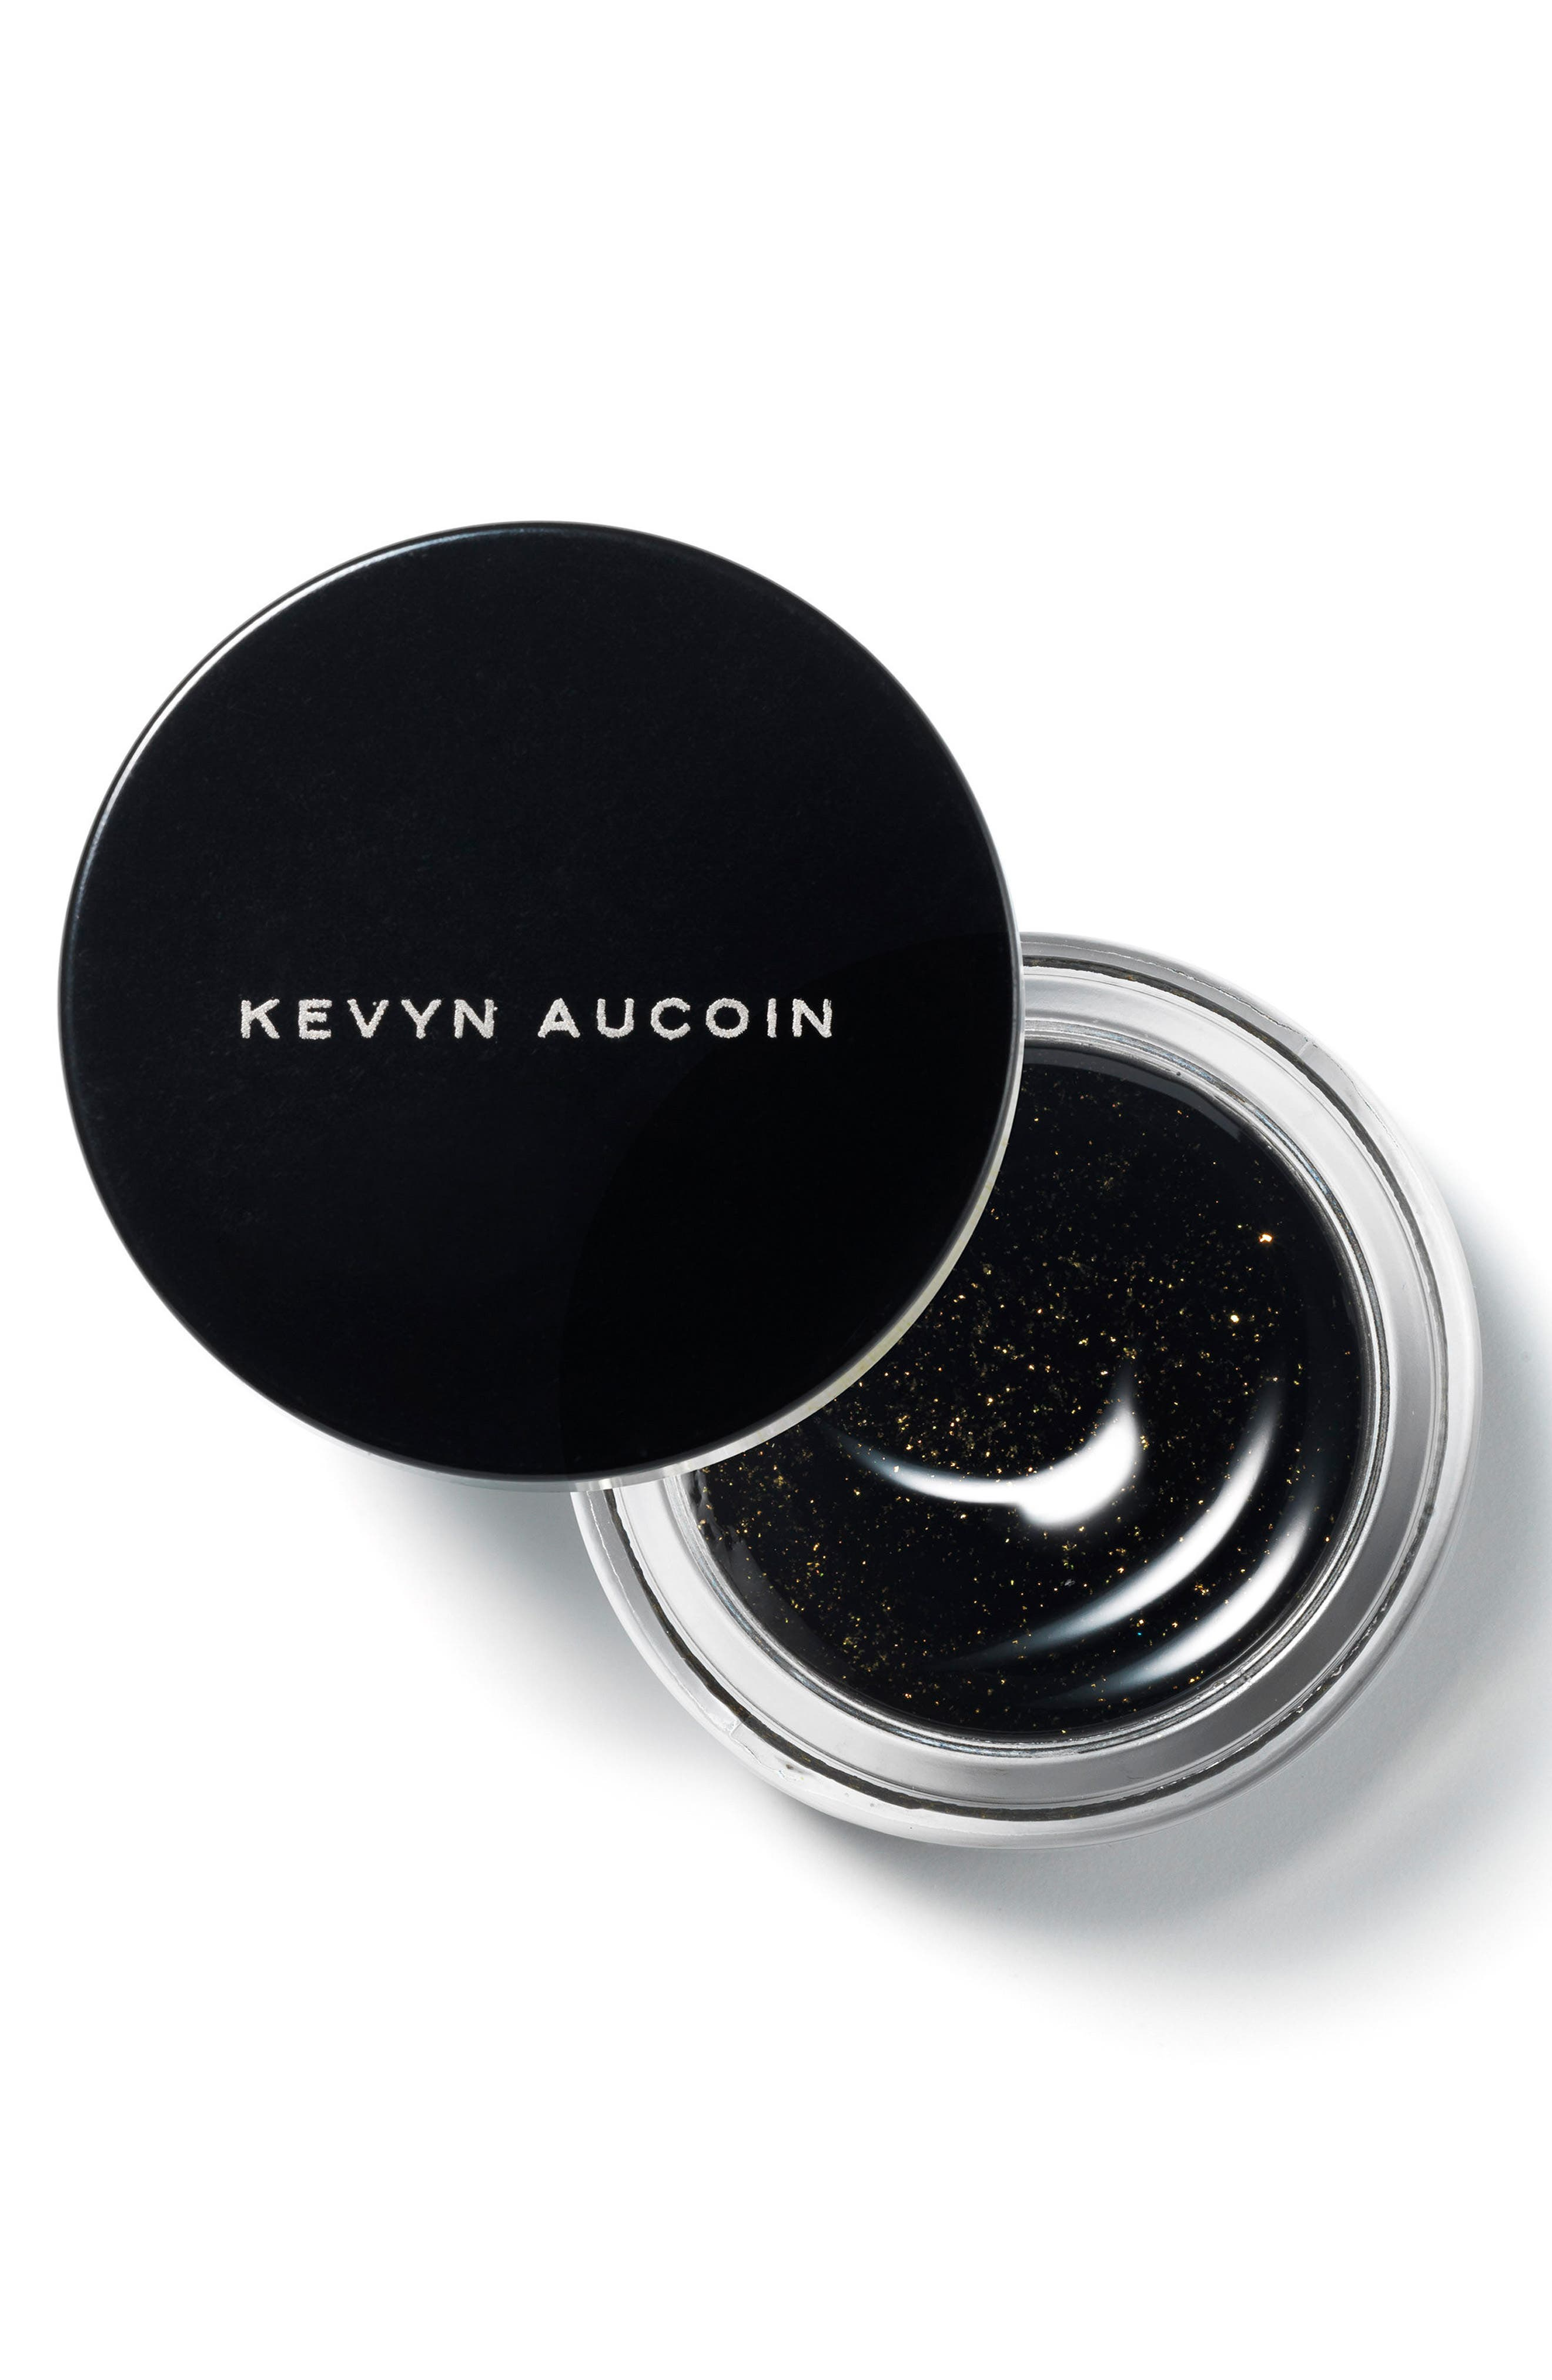 KEVYN AUCOIN BEAUTY, SPACE.NK.apothecary Kevyn Aucoin Beauty The Exotique Diamond Eye Gloss, Main thumbnail 1, color, GALAXY